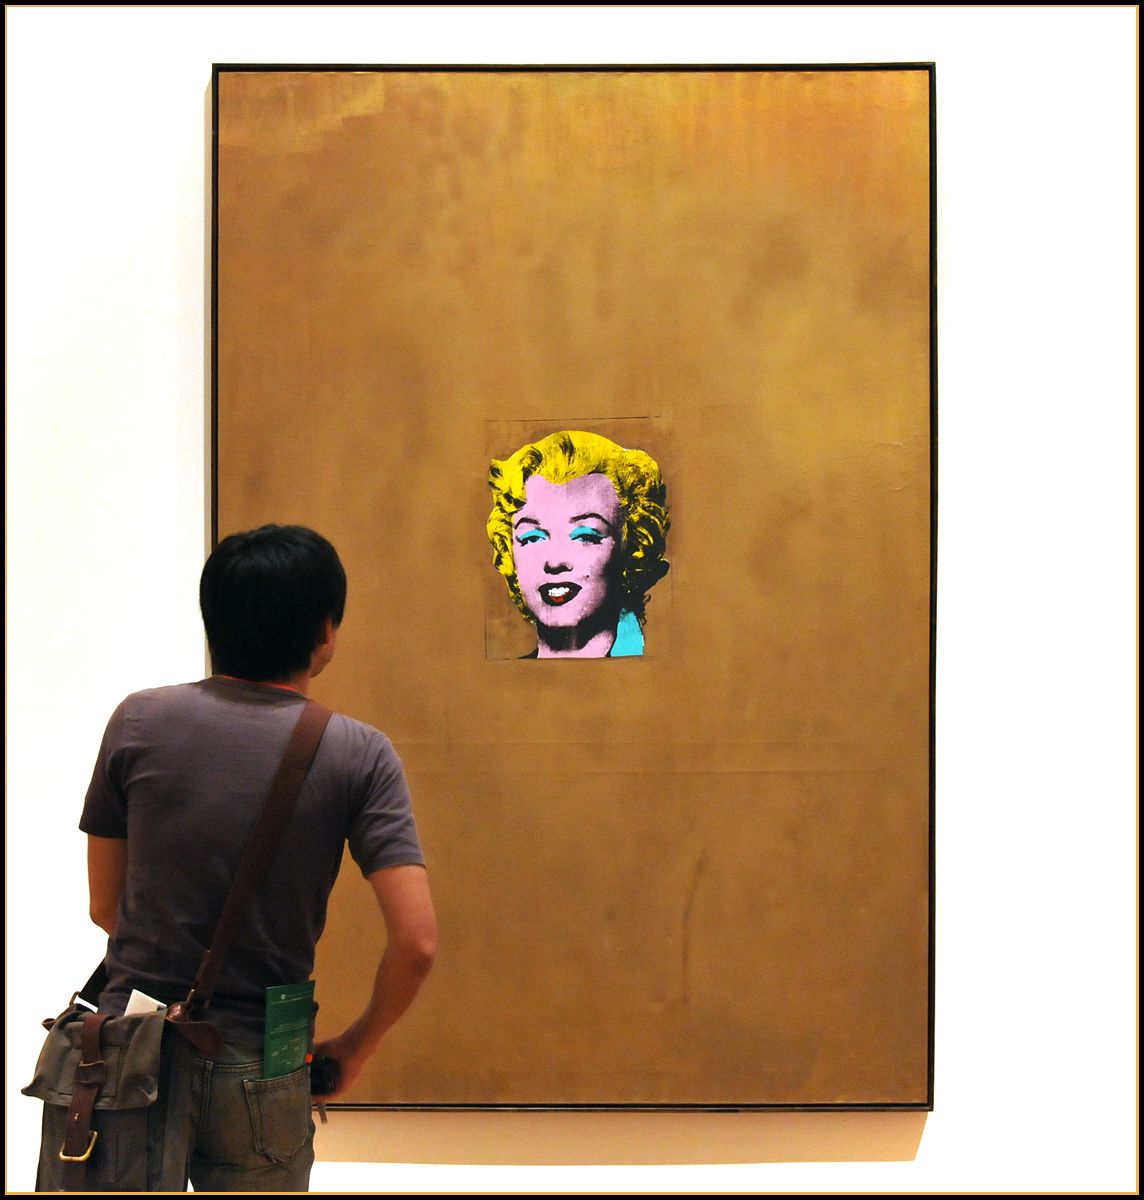 Marilyn ...  encounter of the MoMA kind